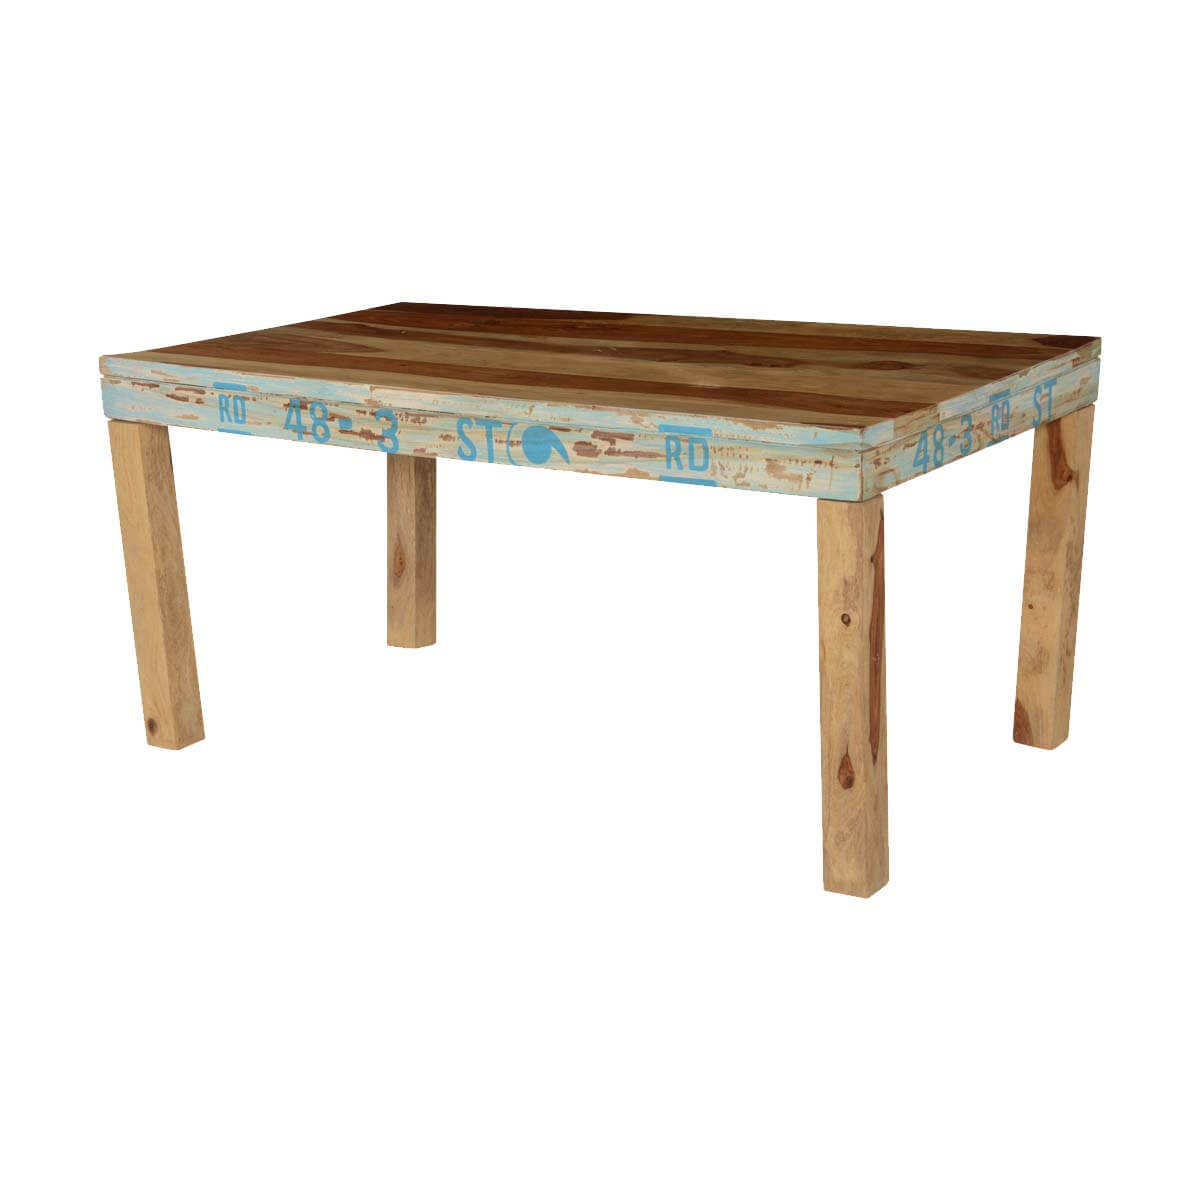 Natural Rustic Solid Wood Rectangular Dining Table : 74353 from www.sierralivingconcepts.com size 1200 x 1200 jpeg 70kB